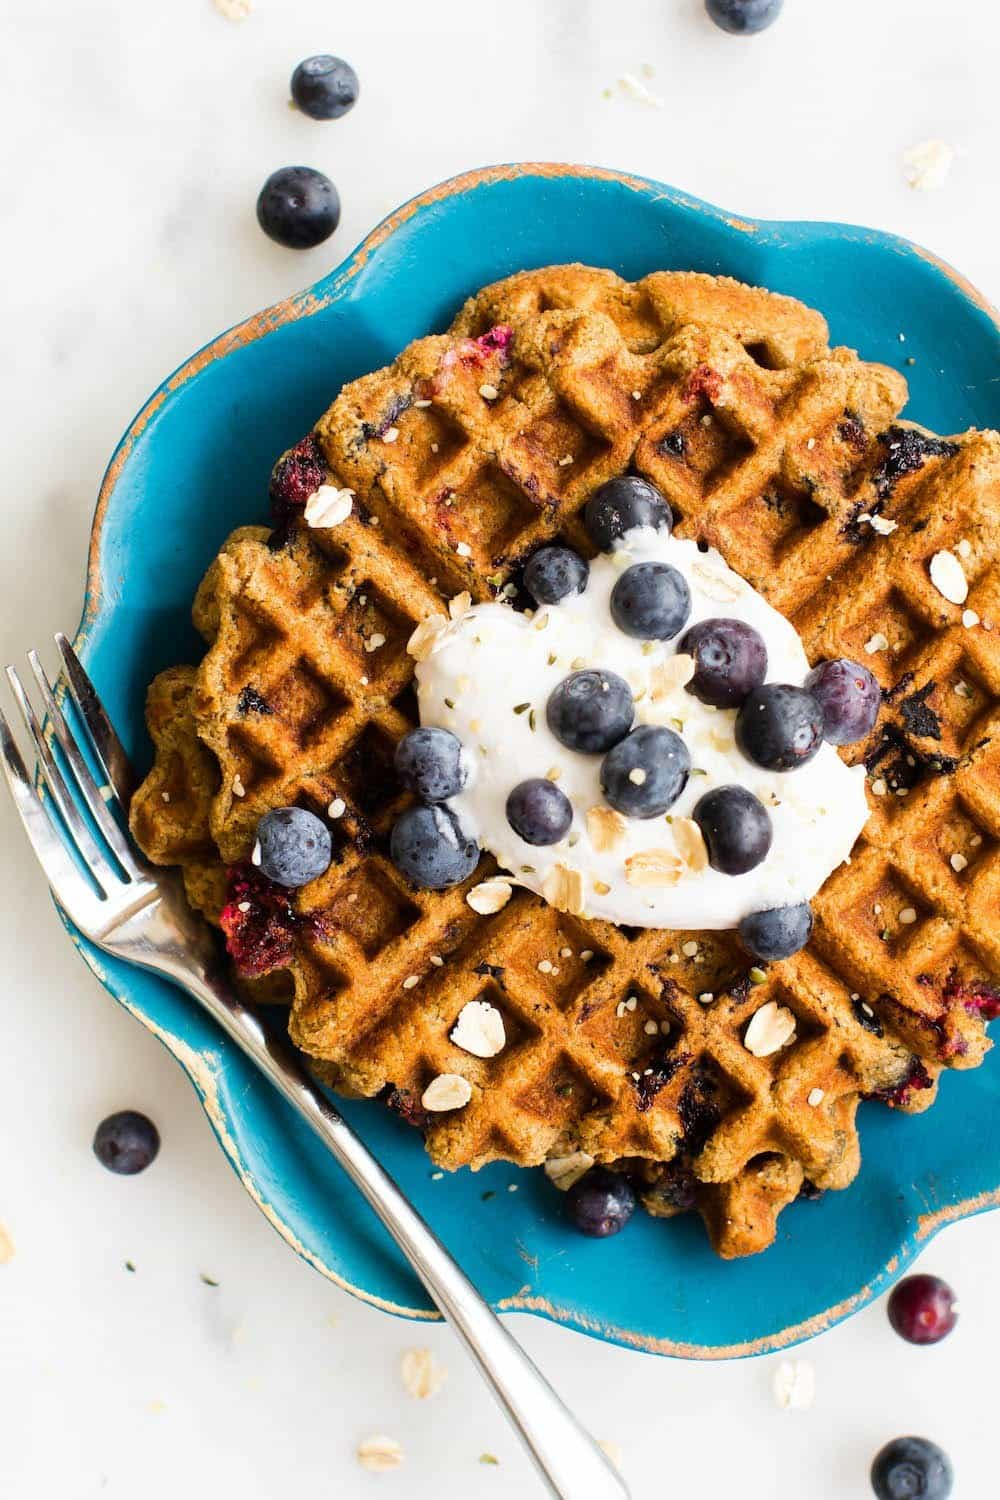 Who says vegans only eat grass & twigs? Here are 30 Vegan Breakfast Recipes that you'll actually want to eat!